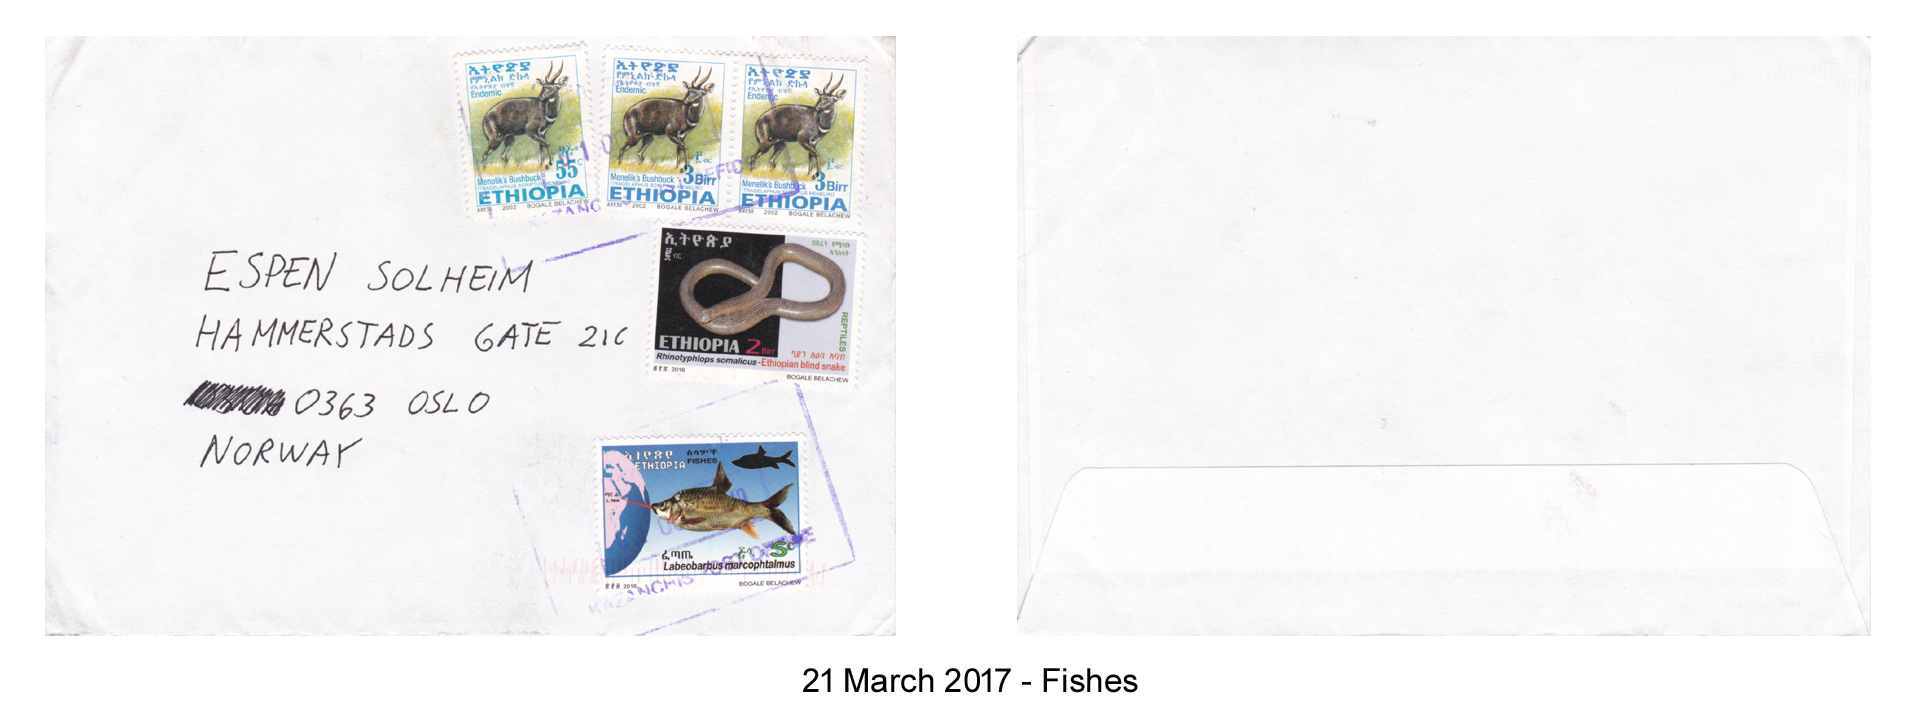 20170321 - Fishes